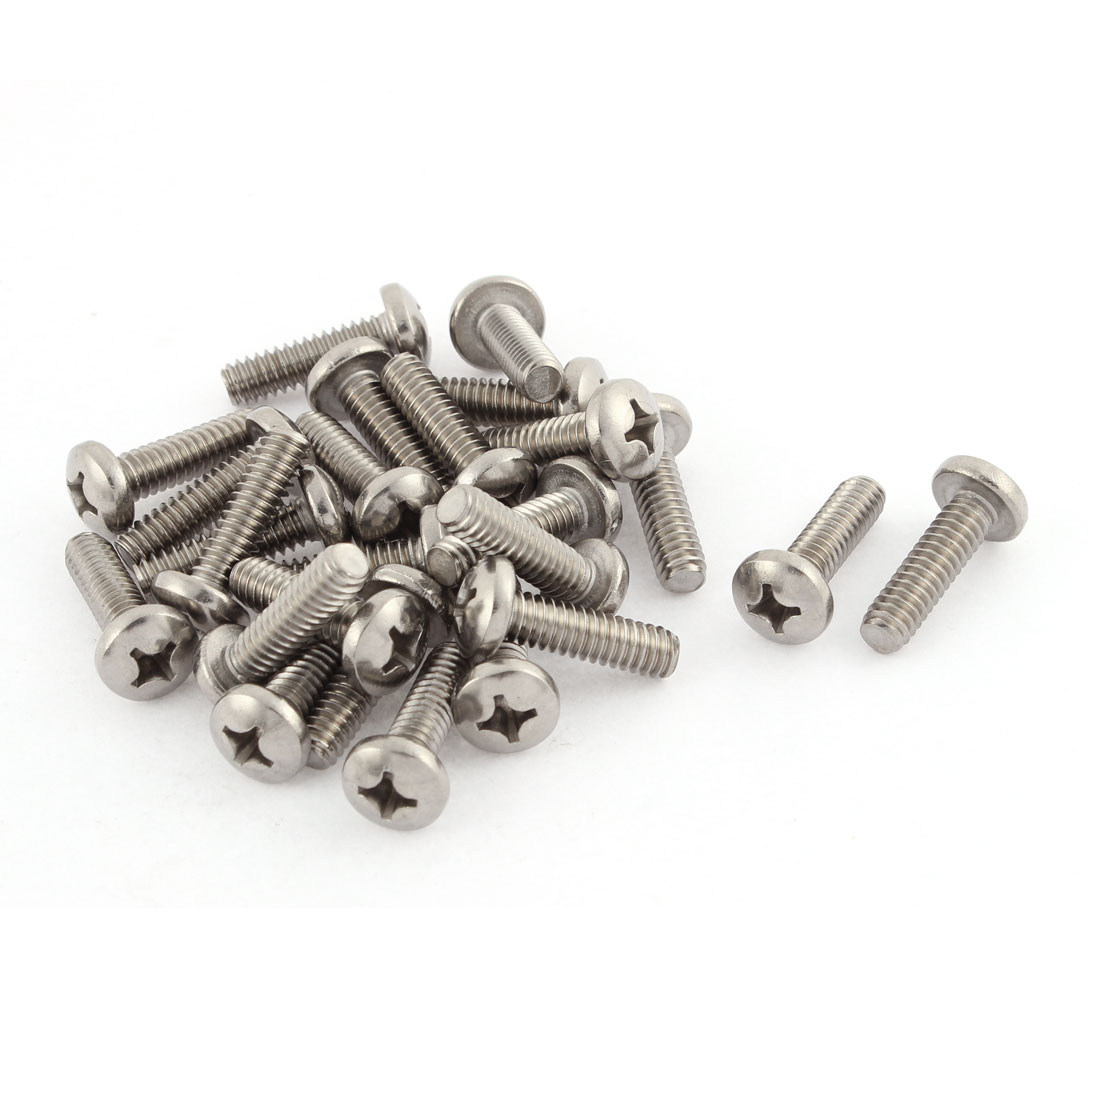 "27mm Long 1/4""x20x7/8"" Stainless Steel Phillips Truss Head Screws 25 Pcs"